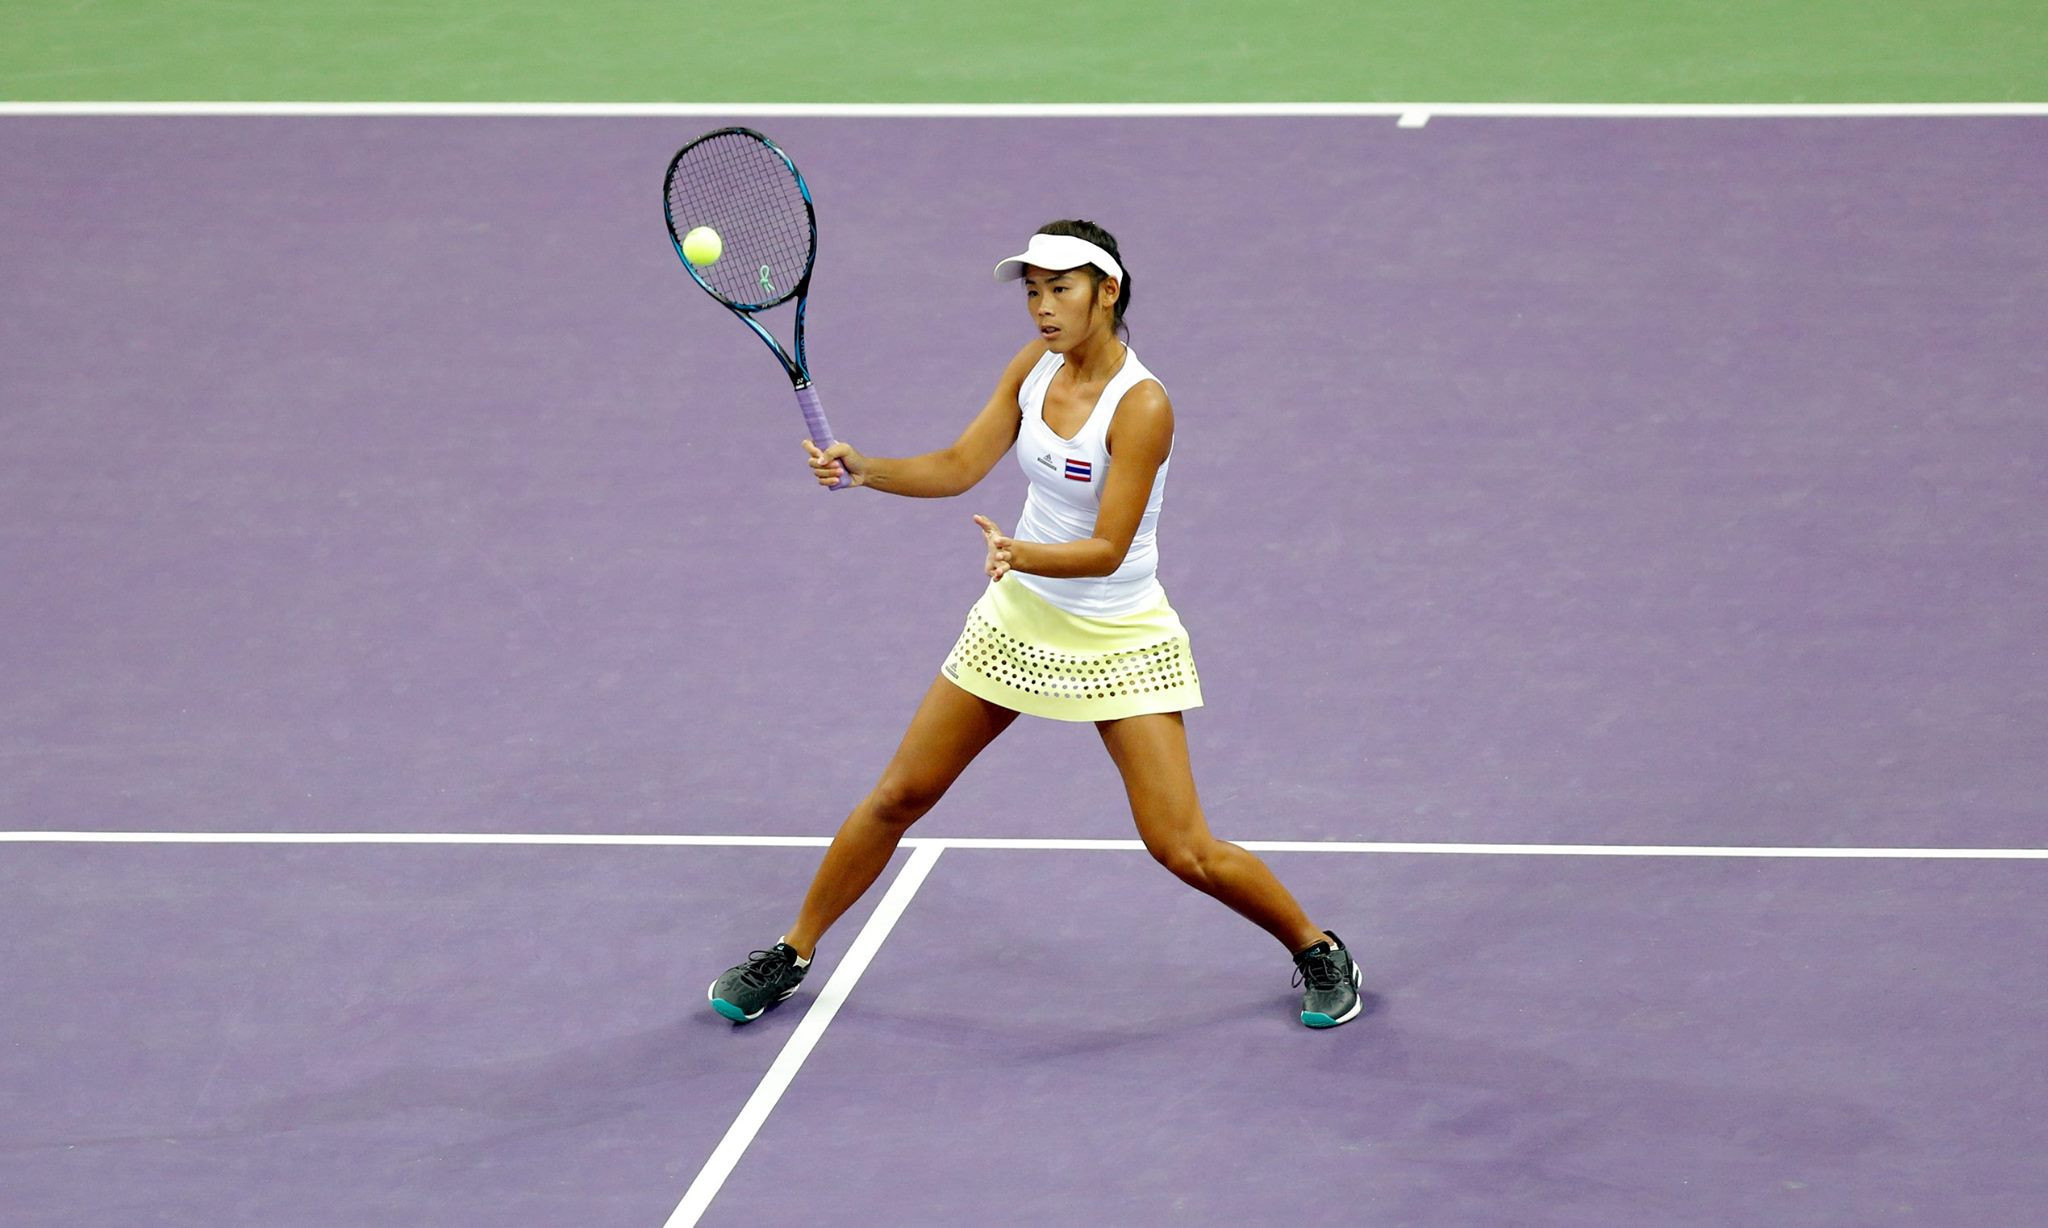 Thailand's Patcharin Cheapchandej lost her women's singles indoor tennis semi-final to Indonesia's Aldila Sutjiadi ©Ashgabat 2017/Facebook